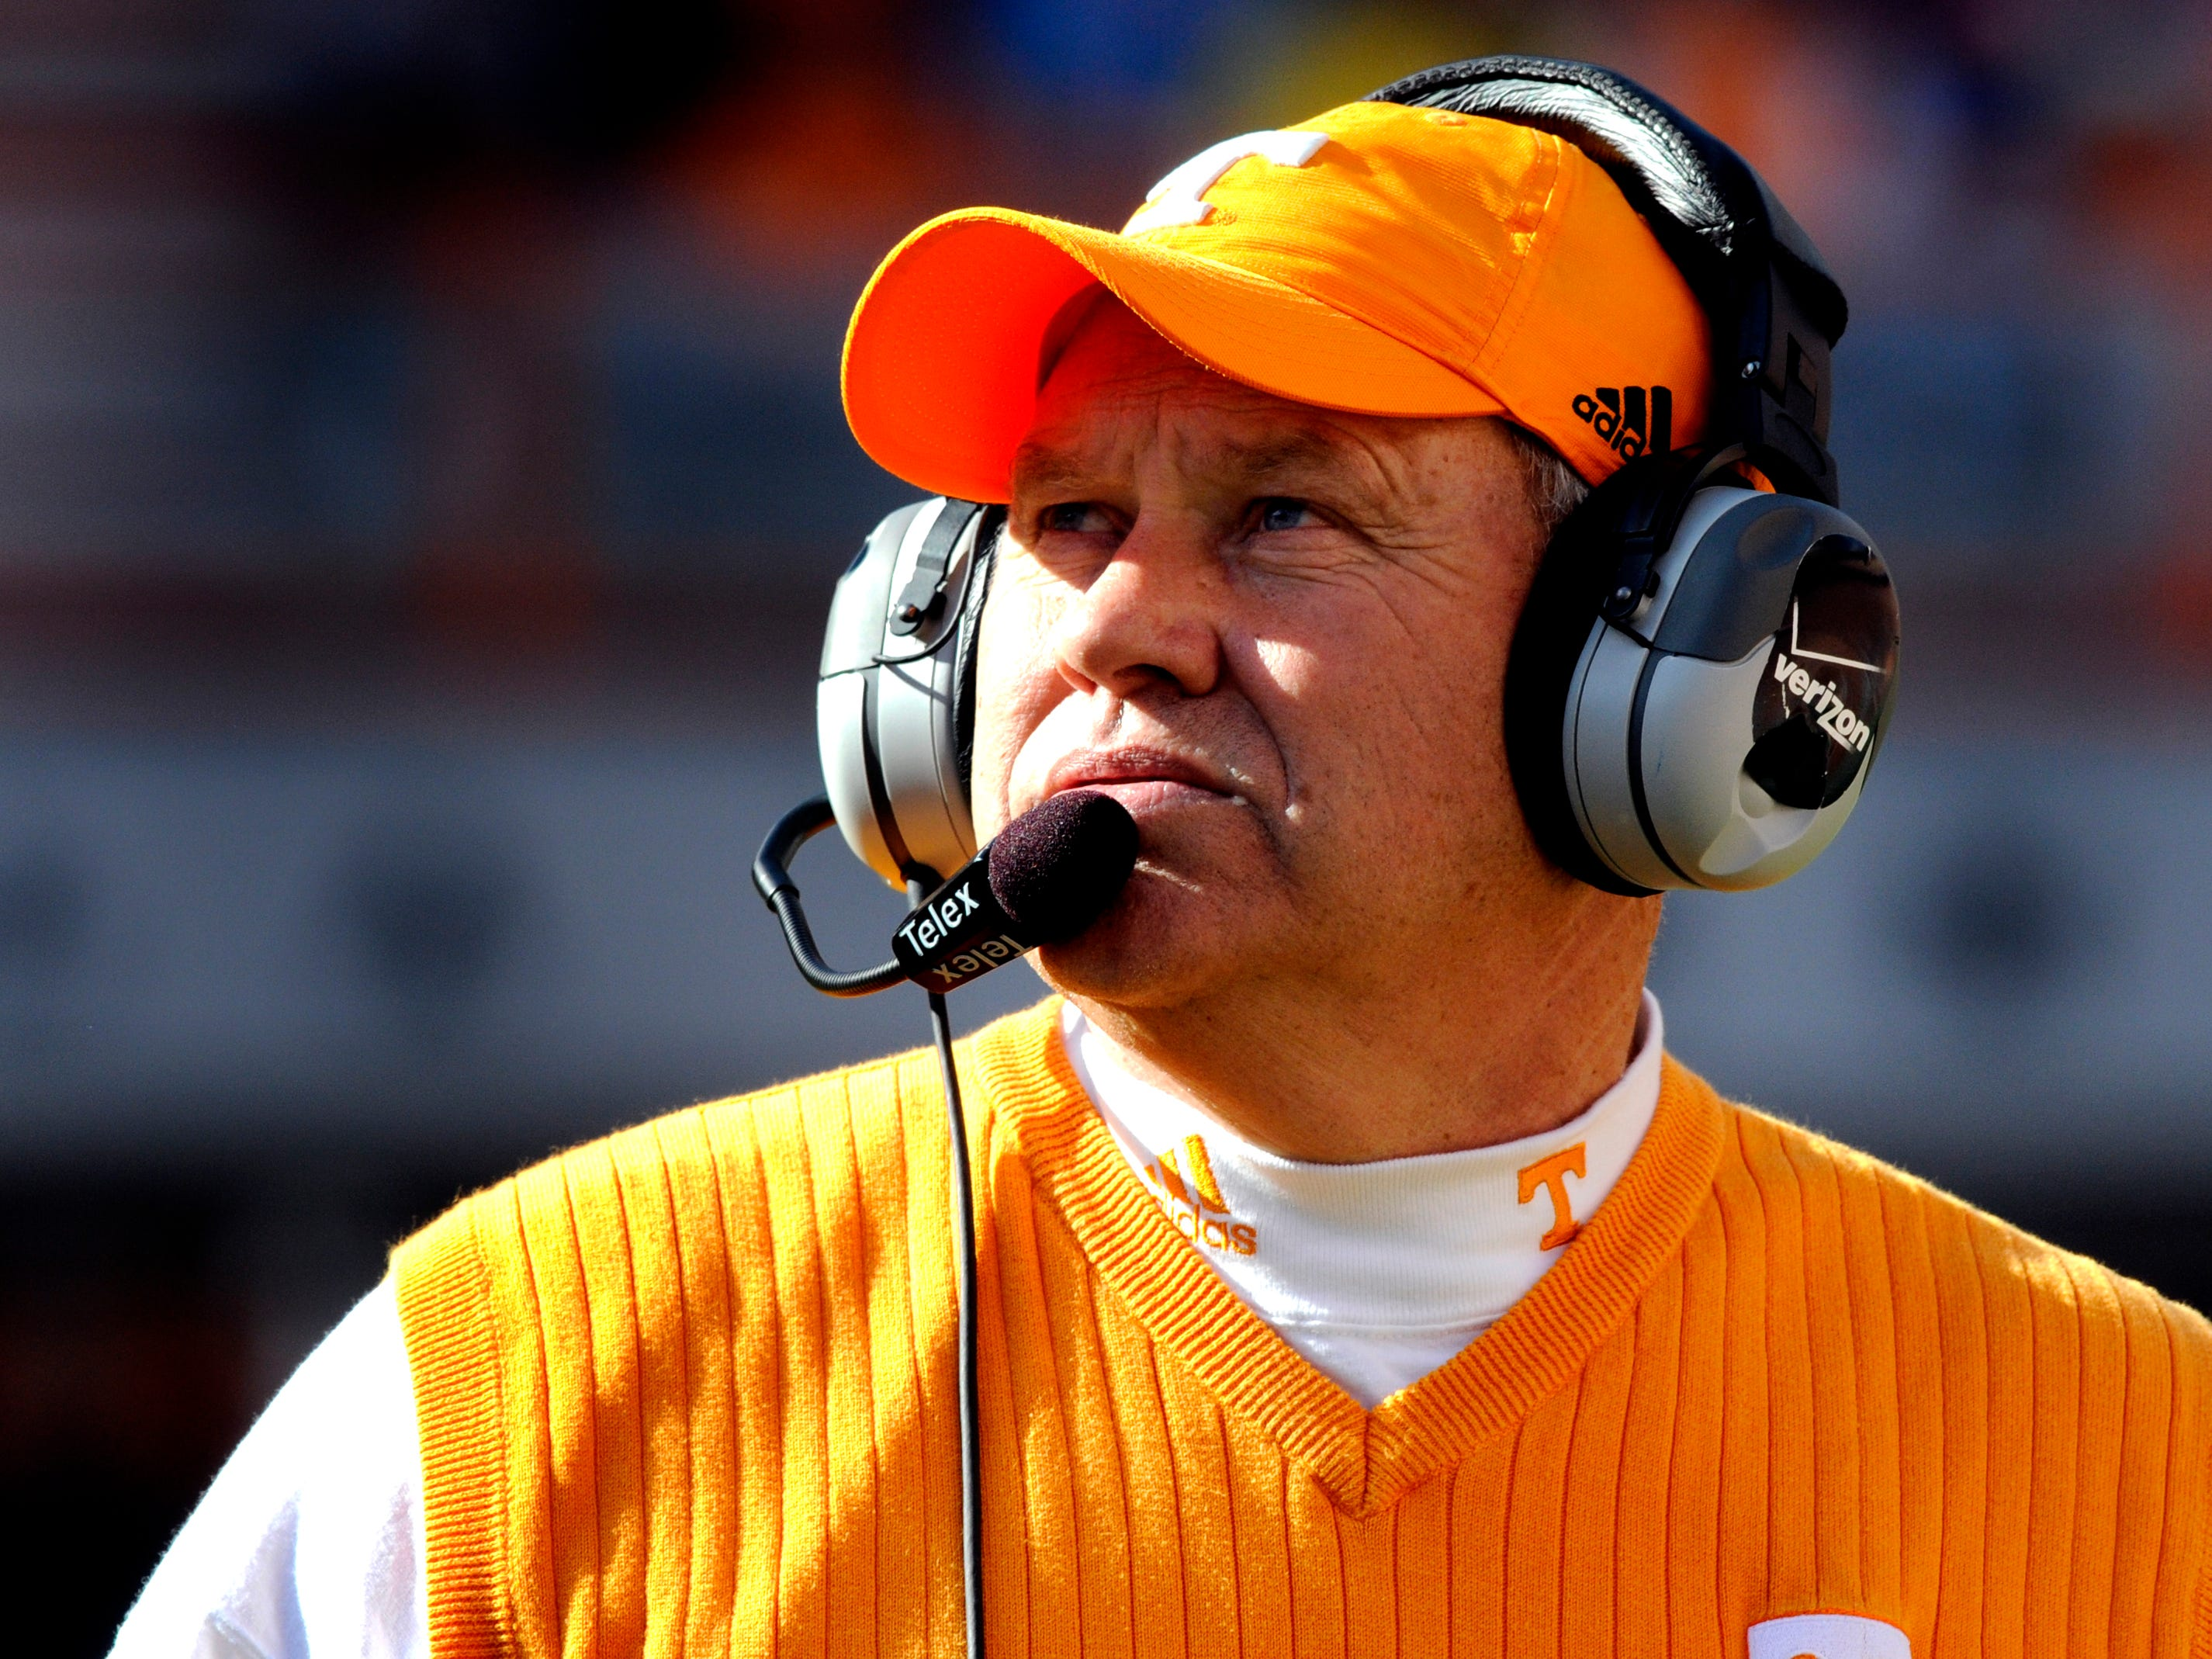 Tennessee Volunteer head coach Phillip Fulmer watches a replay on the jumbotron during their 13-7 homecoming loss to the University of Wyoming Cowboys Saturday in 2008 in Neyland Stadium.